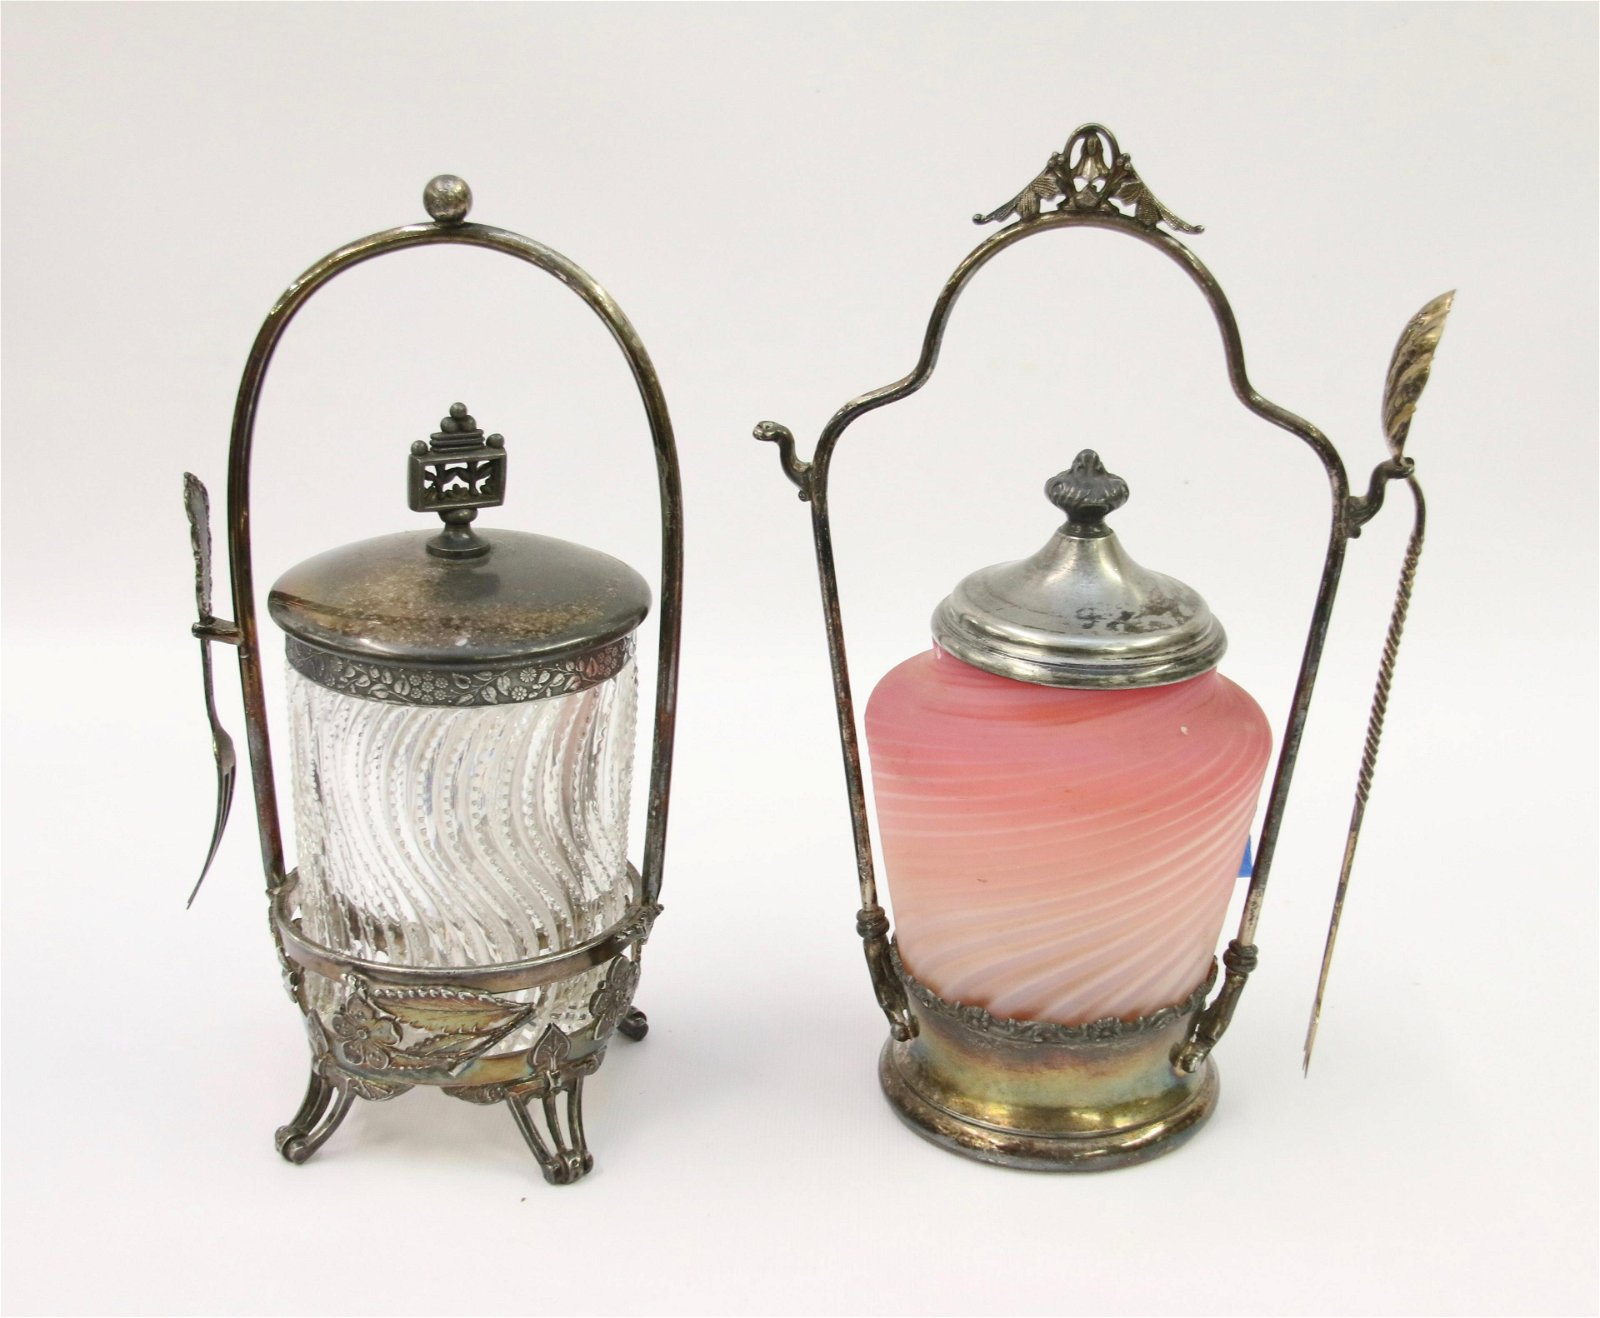 PAIR OF VICTORIAN PICKLE CASTERS